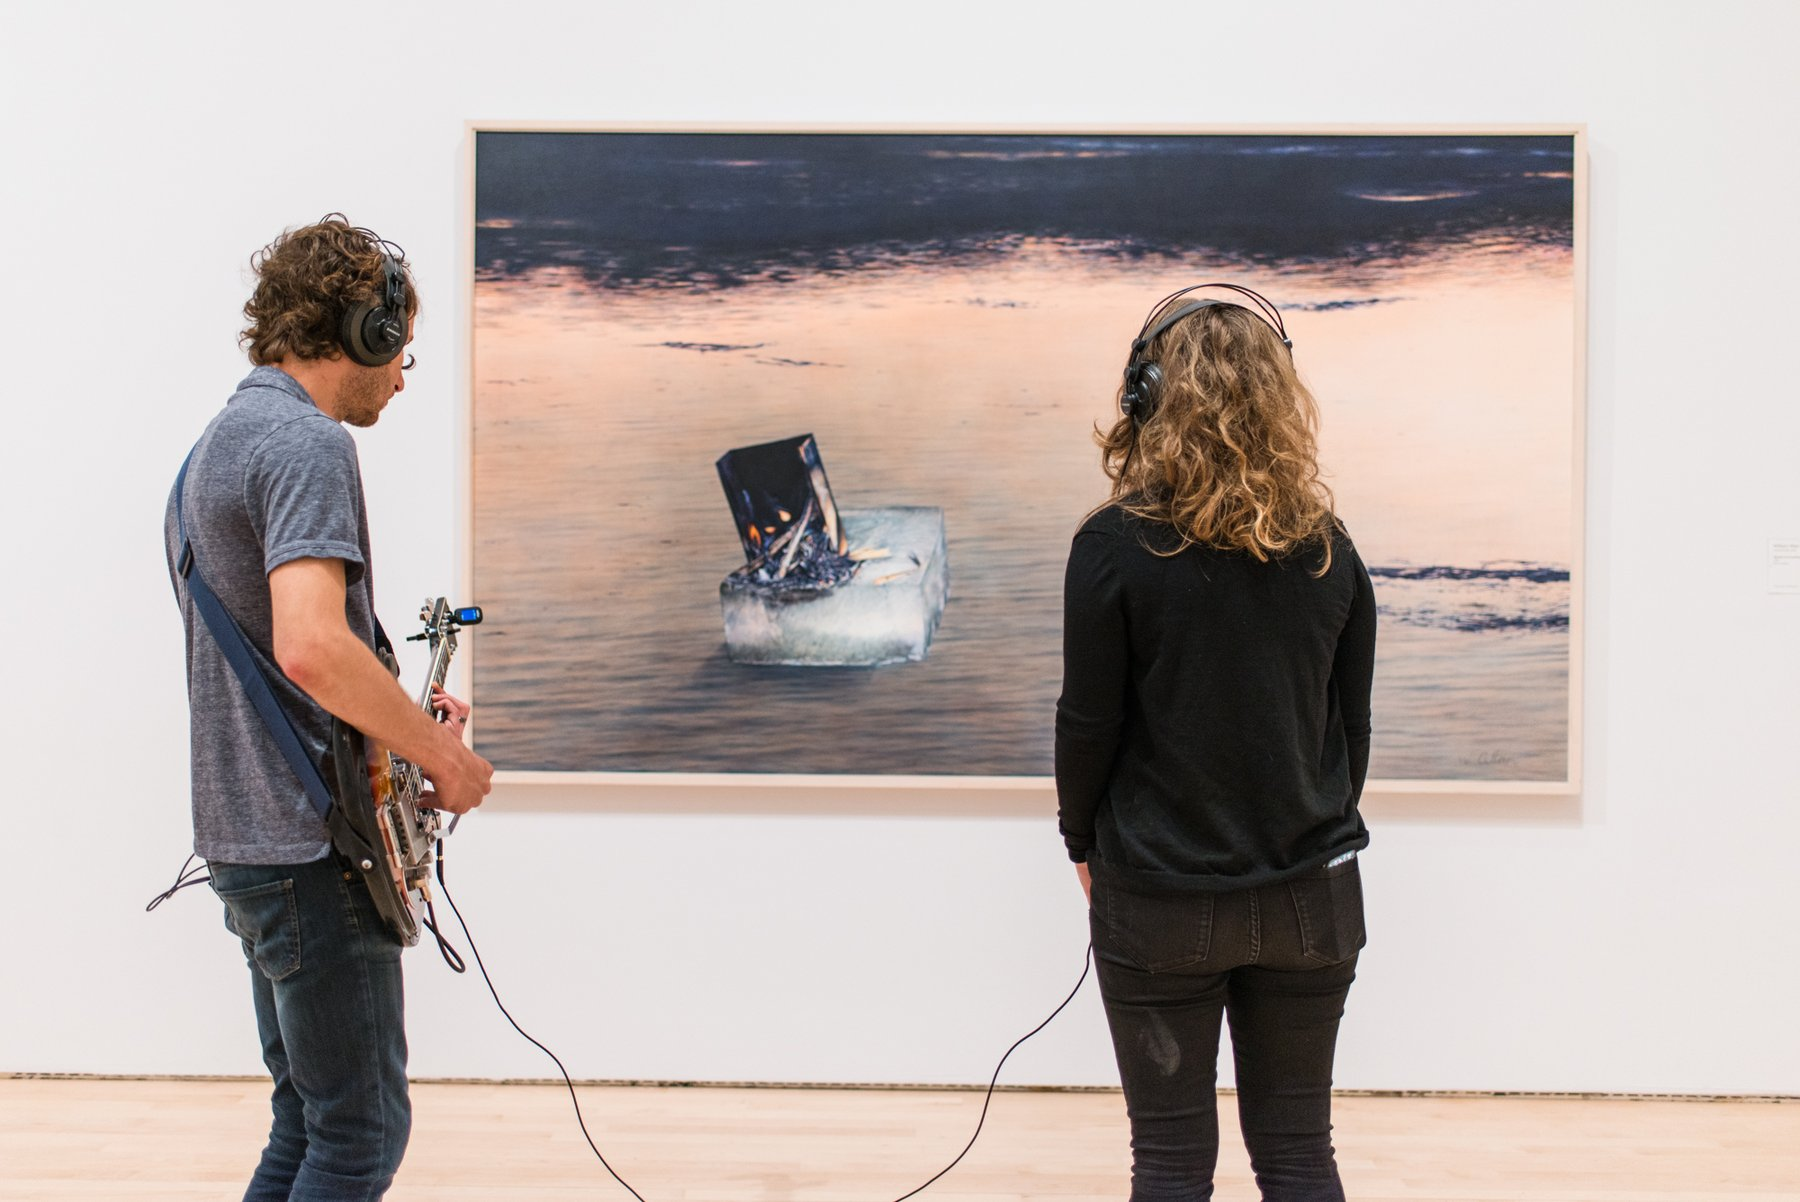 A man playing guitar stands next to a woman listening on headphones in front of a painting, Kallmyer/Allen, Soundtracks